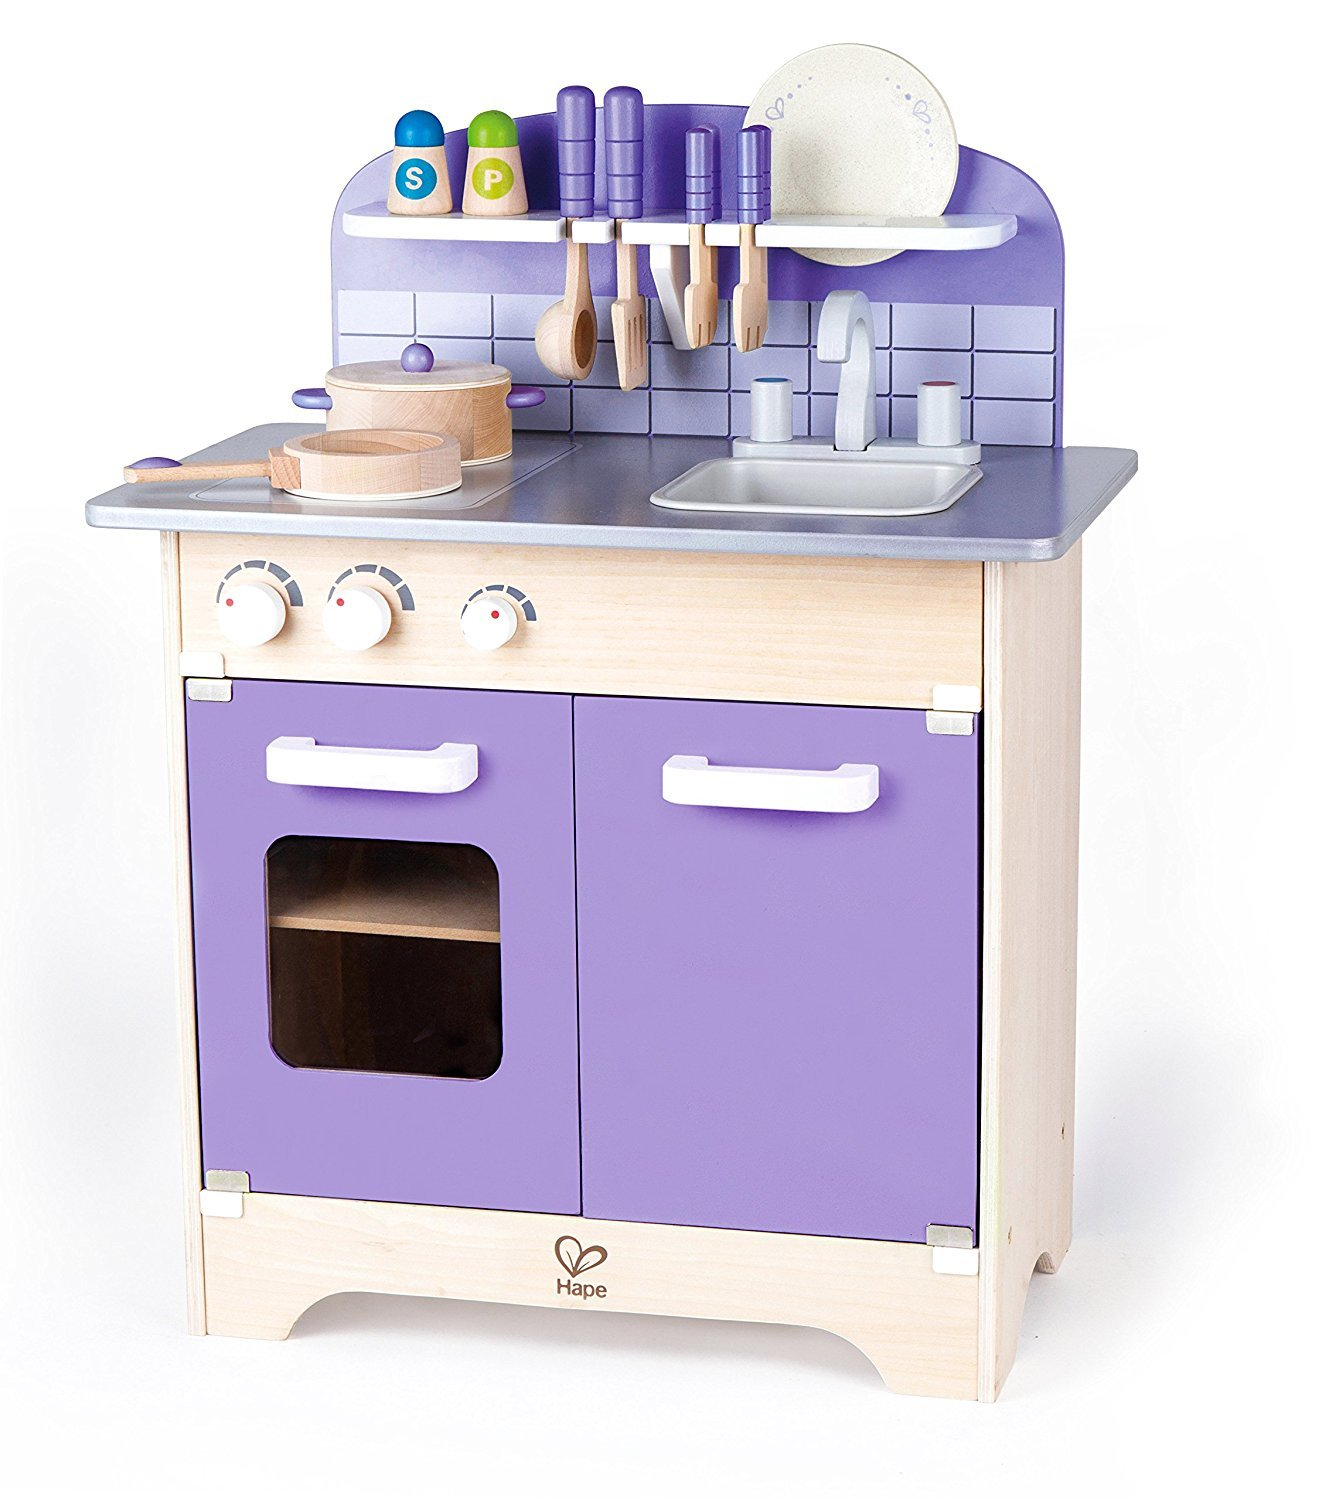 Kitchen Set Instan: 10 Best Wooden Play Kitchens For Kids